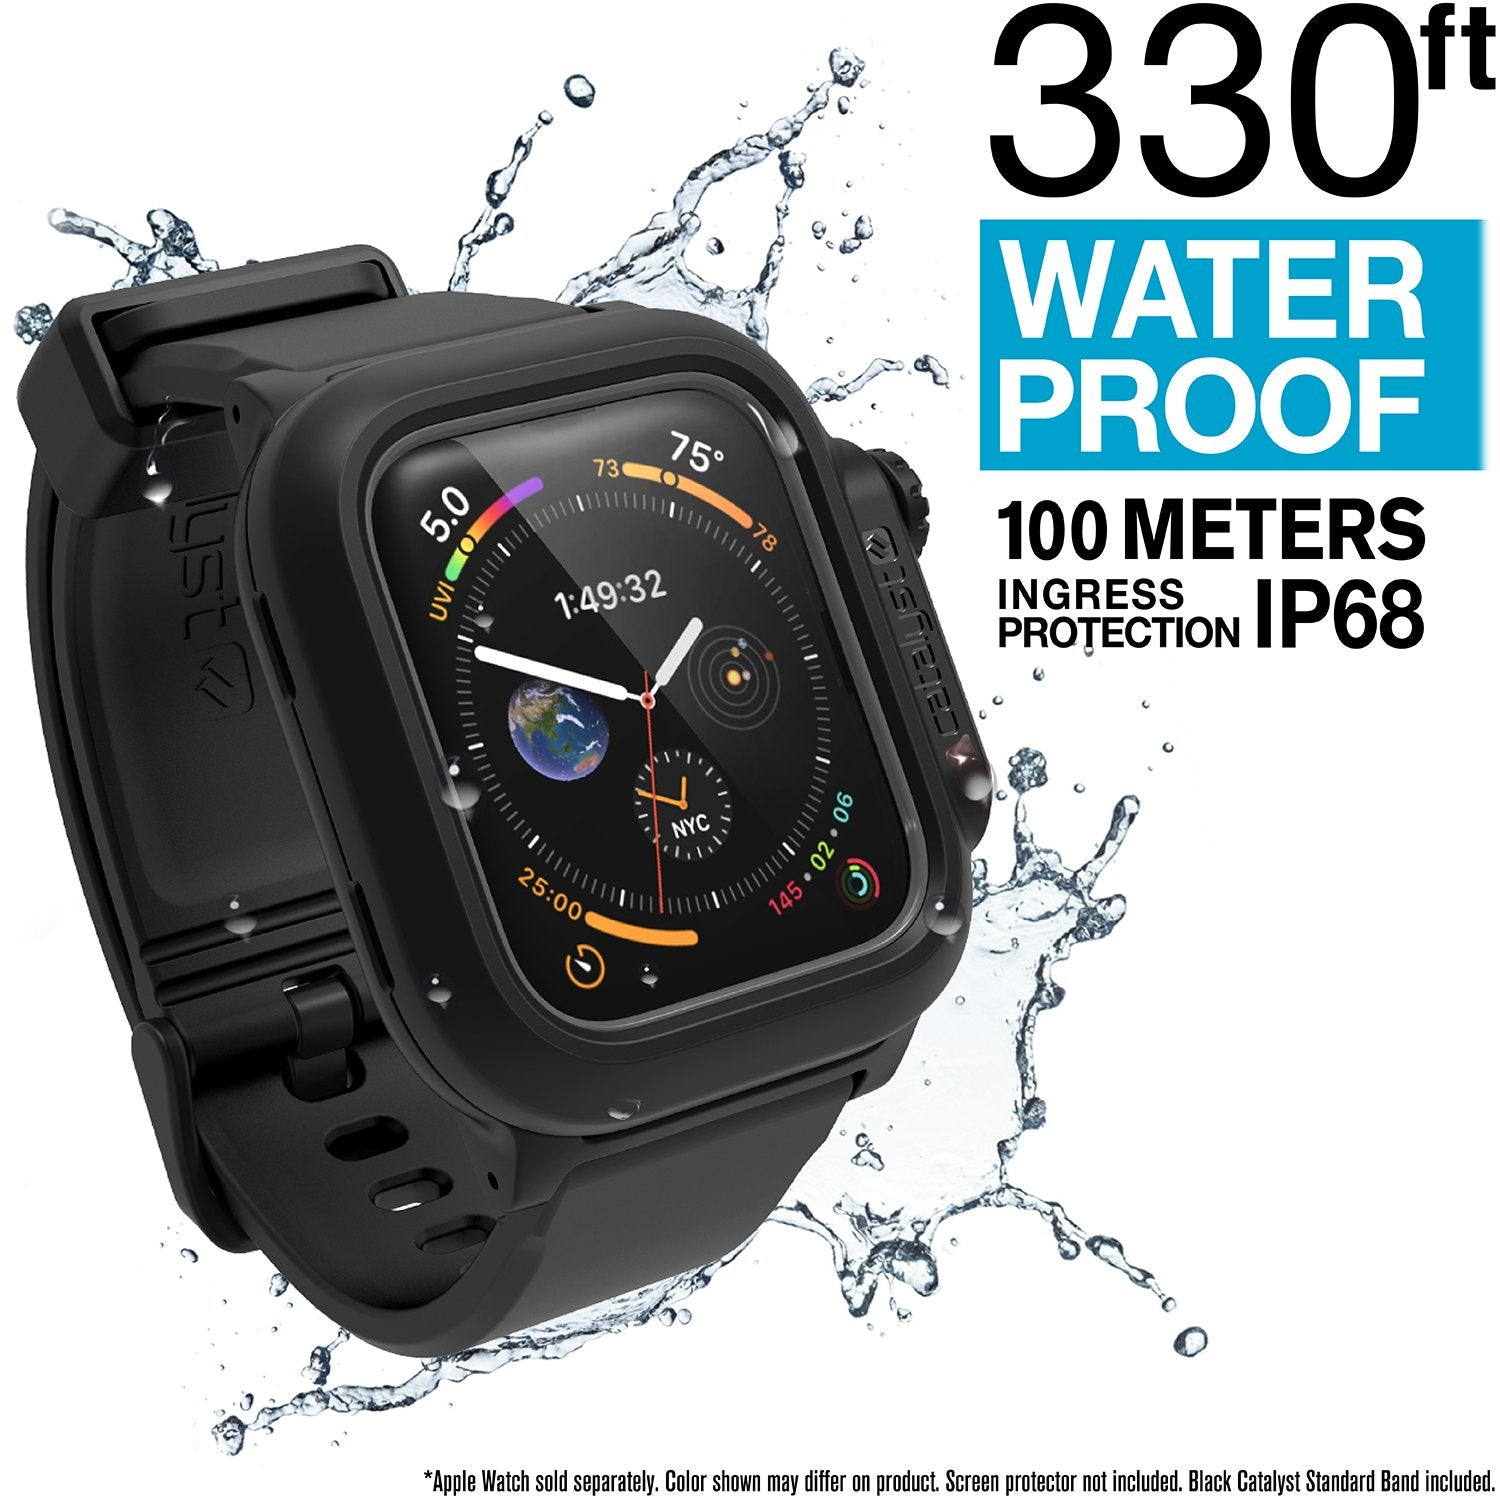 Catalyst Waterproof Case for Apple Watch Series SE, 6, 5 & 4 for 44mm - Stealth Black